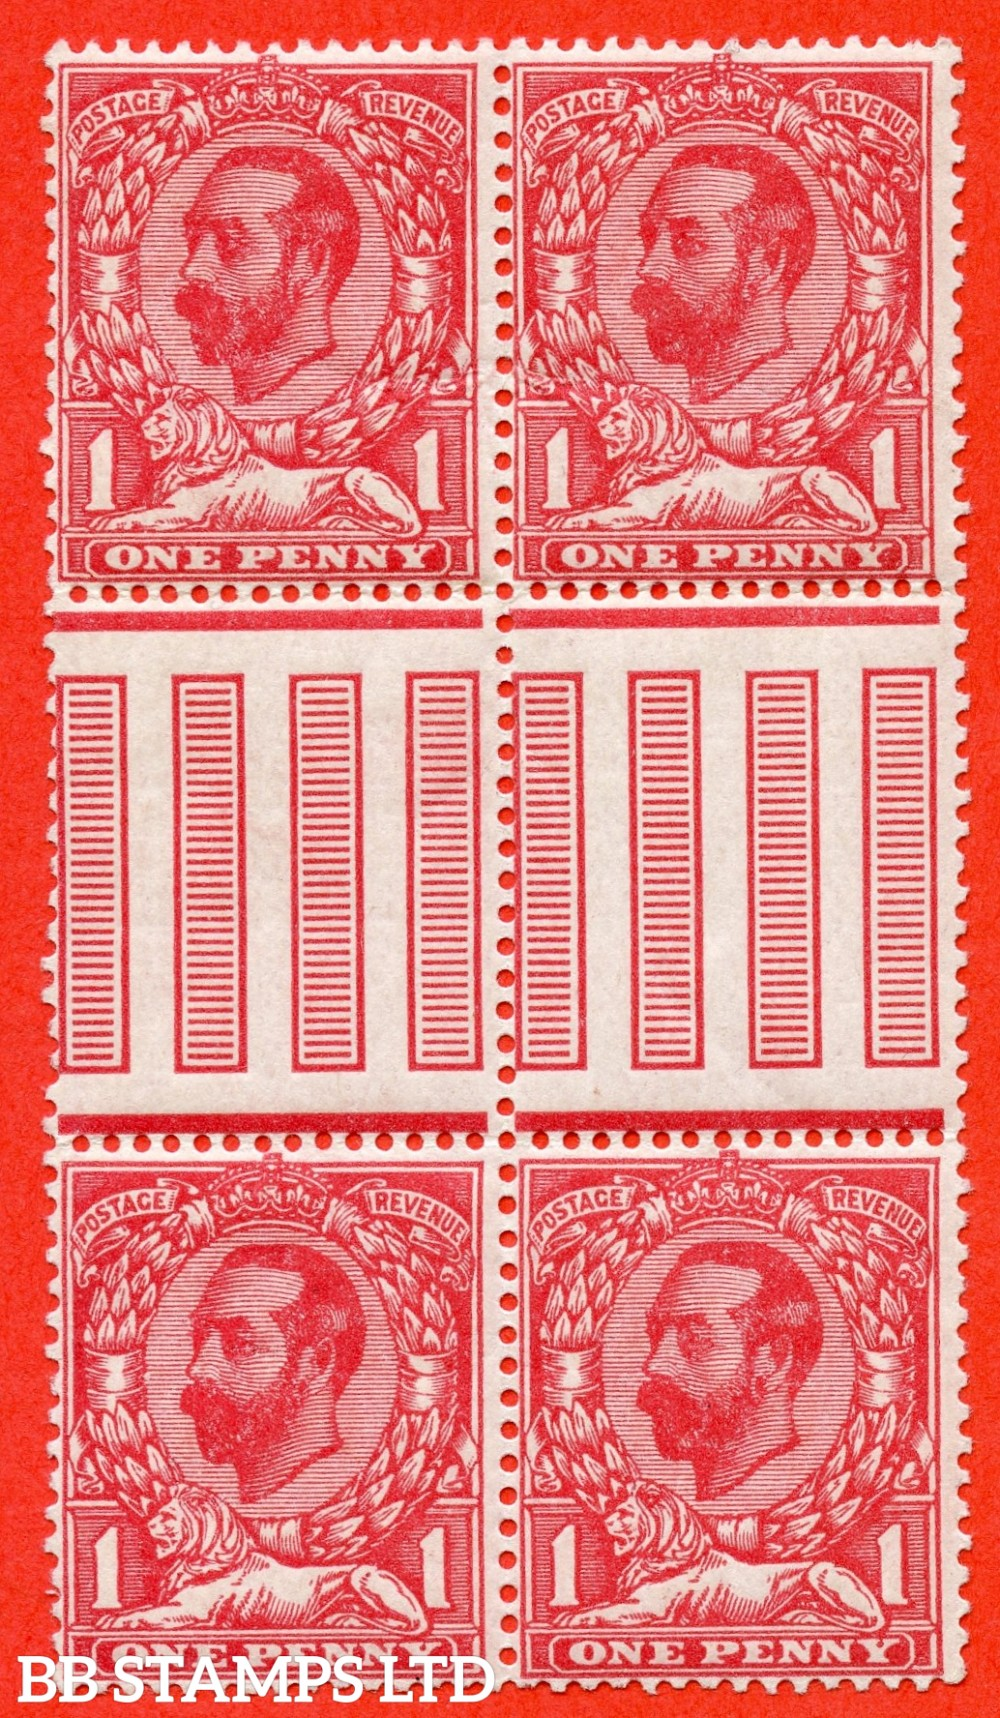 SG. 327 variety N7 ( UNLISTED ). 1d Bright Carmine. Die 1A. A very fine UNMOUNTED MINT interpanneau gotter block of 4 of this known but unlisted by SG Downey shade variety complete with Hendon certificate.